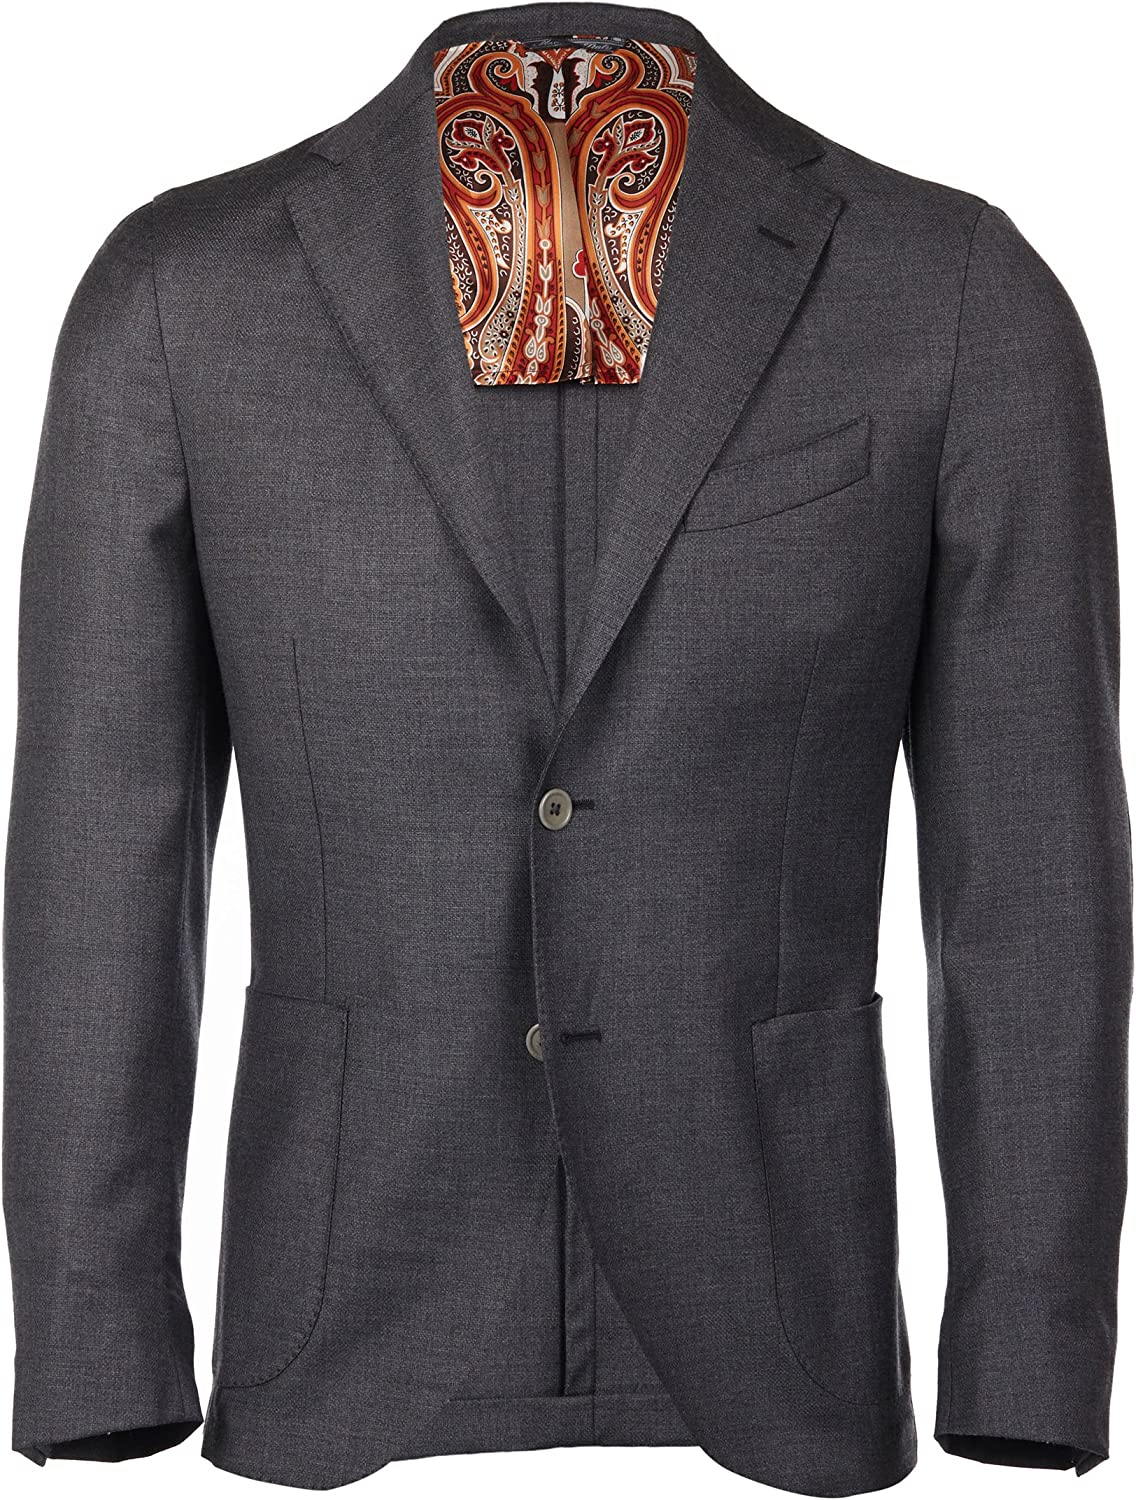 Mens Blazer in Medium Gray with Two-Button and Patch Pocket. Made in Italy